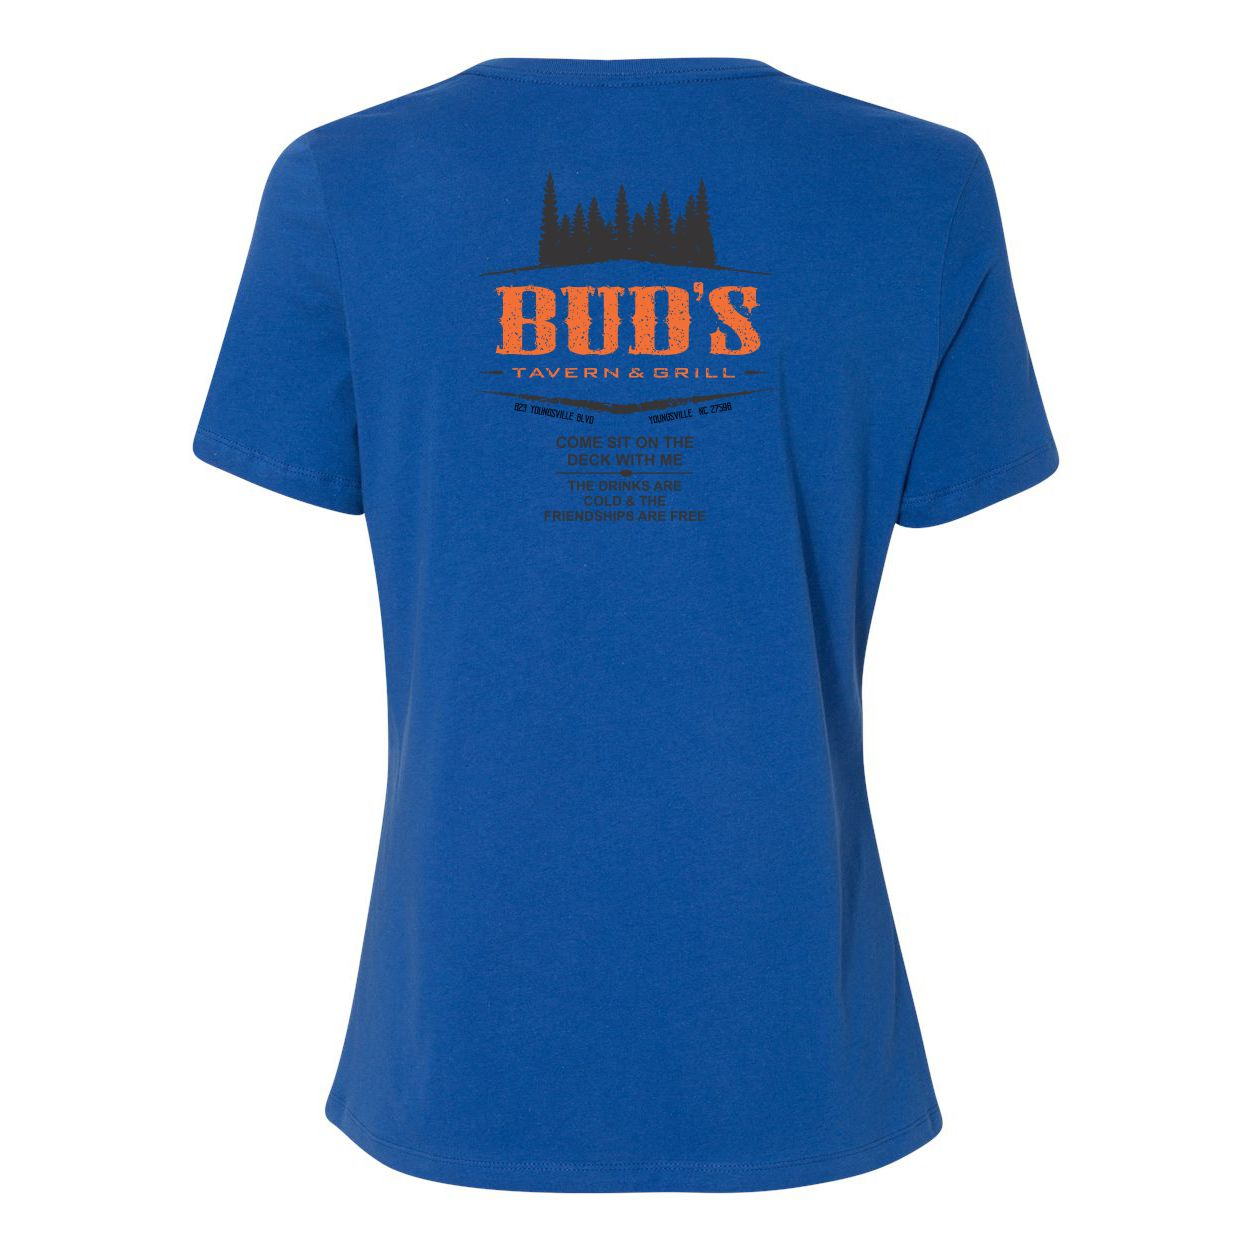 Official Bud's Tavern & Grill Logo Women's Tee